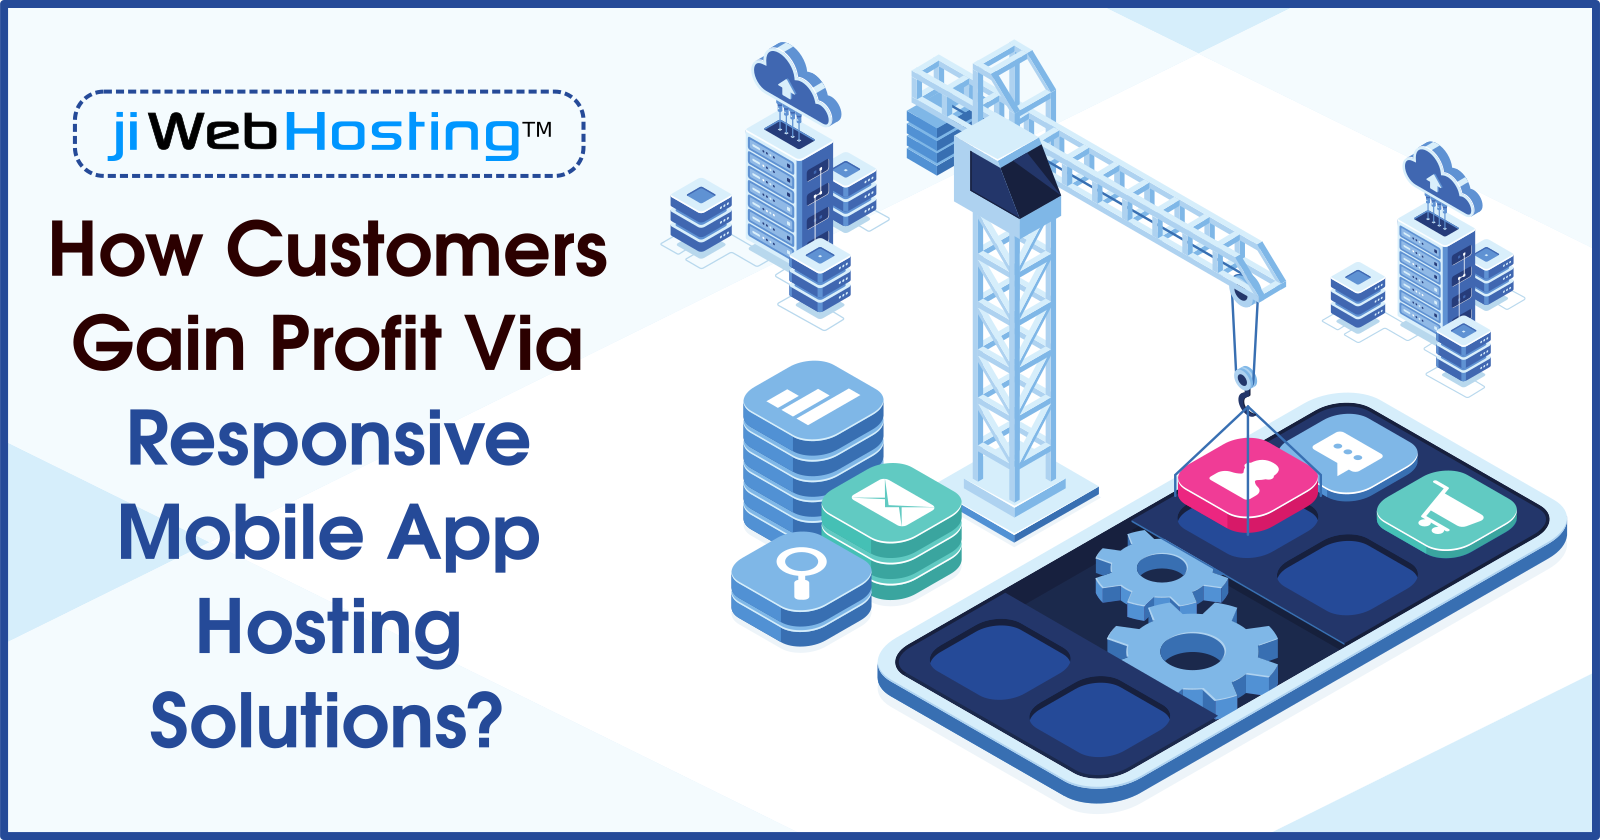 How Customers Gain Profit Via Responsive Mobile App Hosting Solutions?